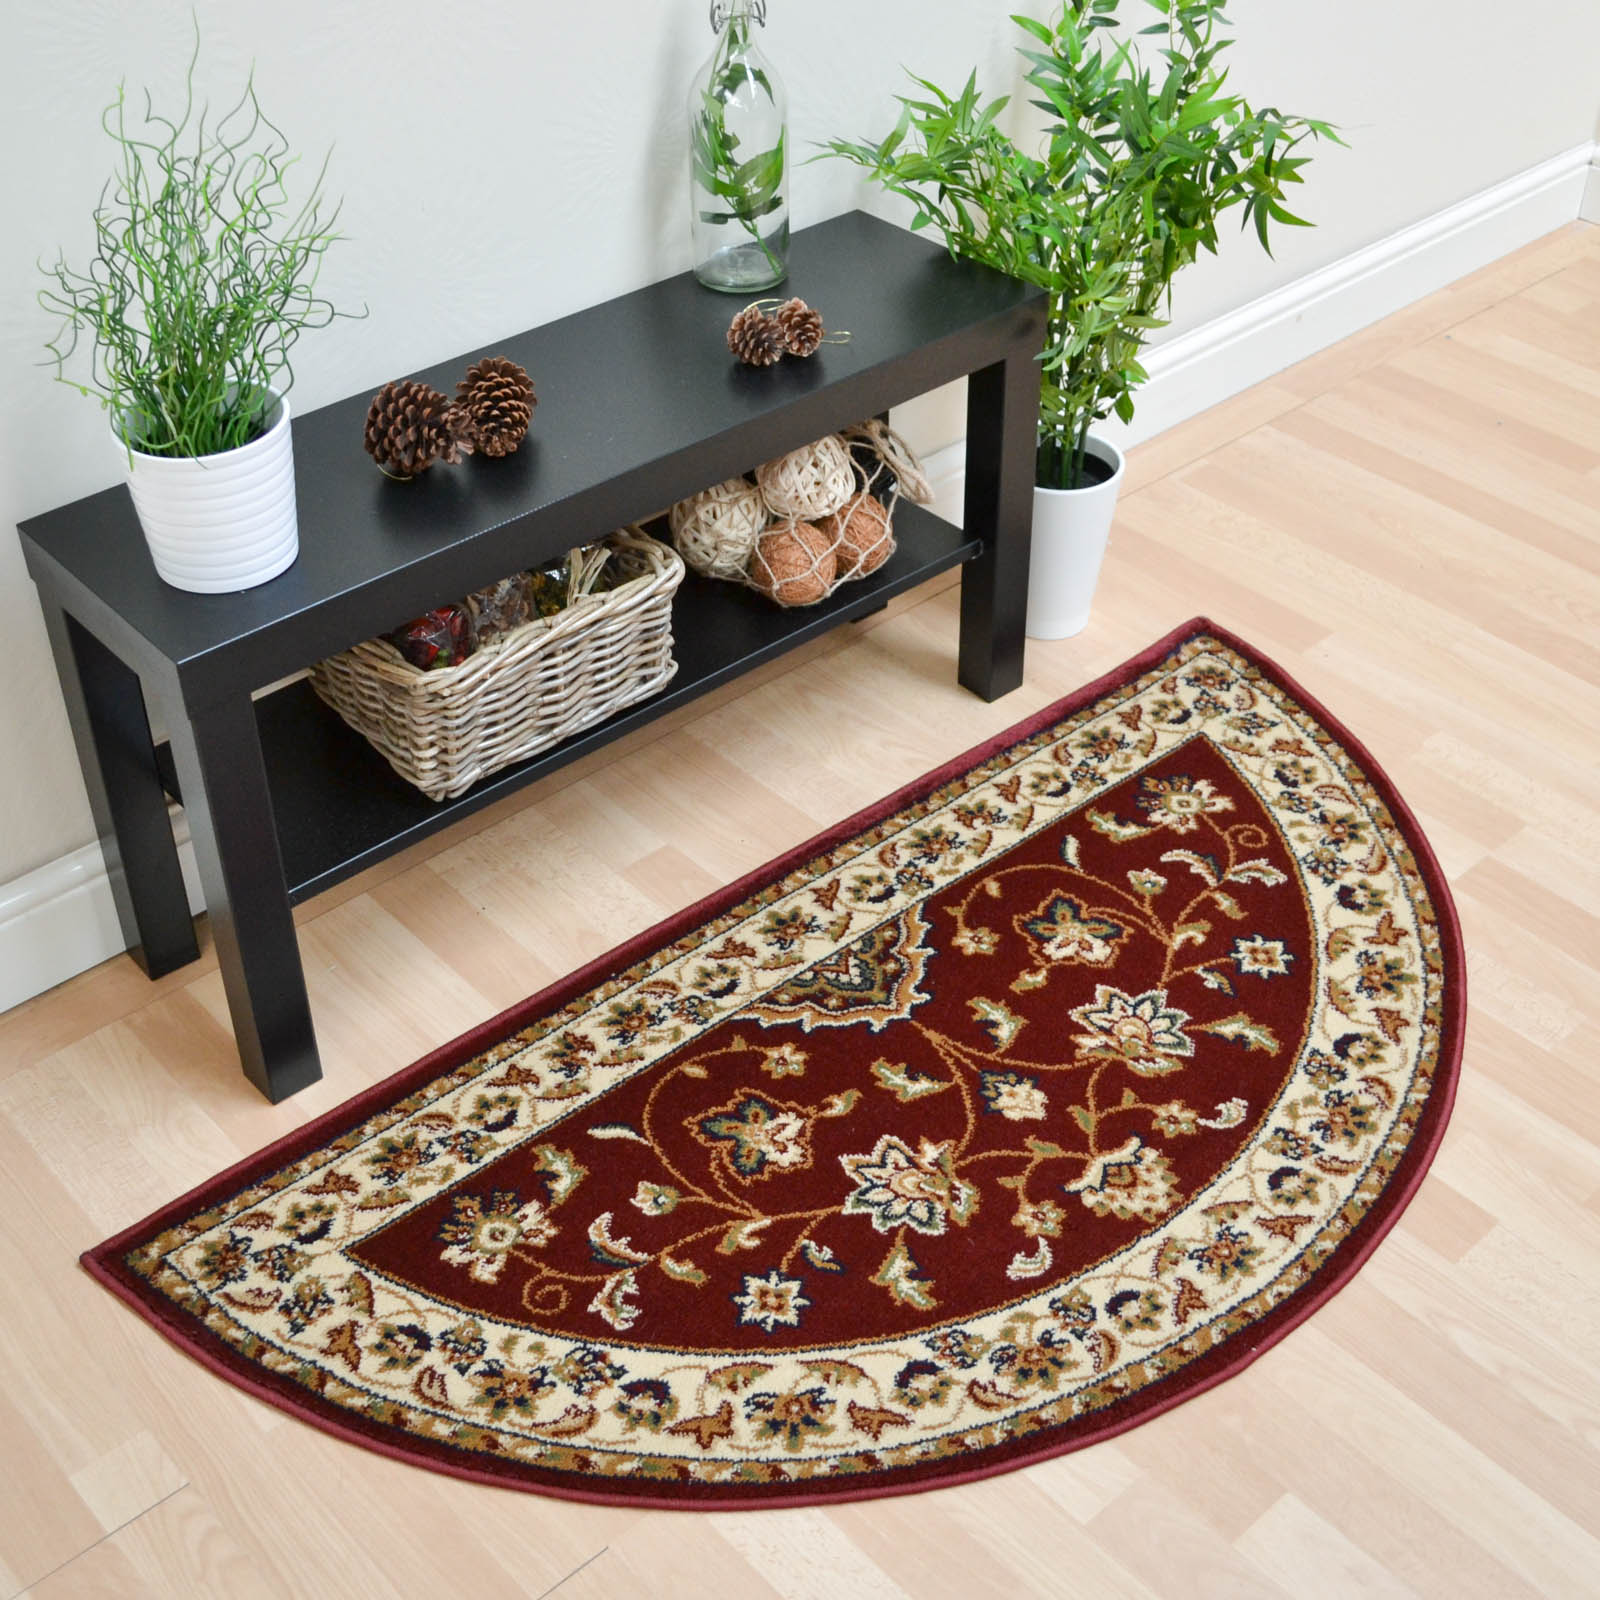 Sherborne Traditional Half Moon Rugs in Red